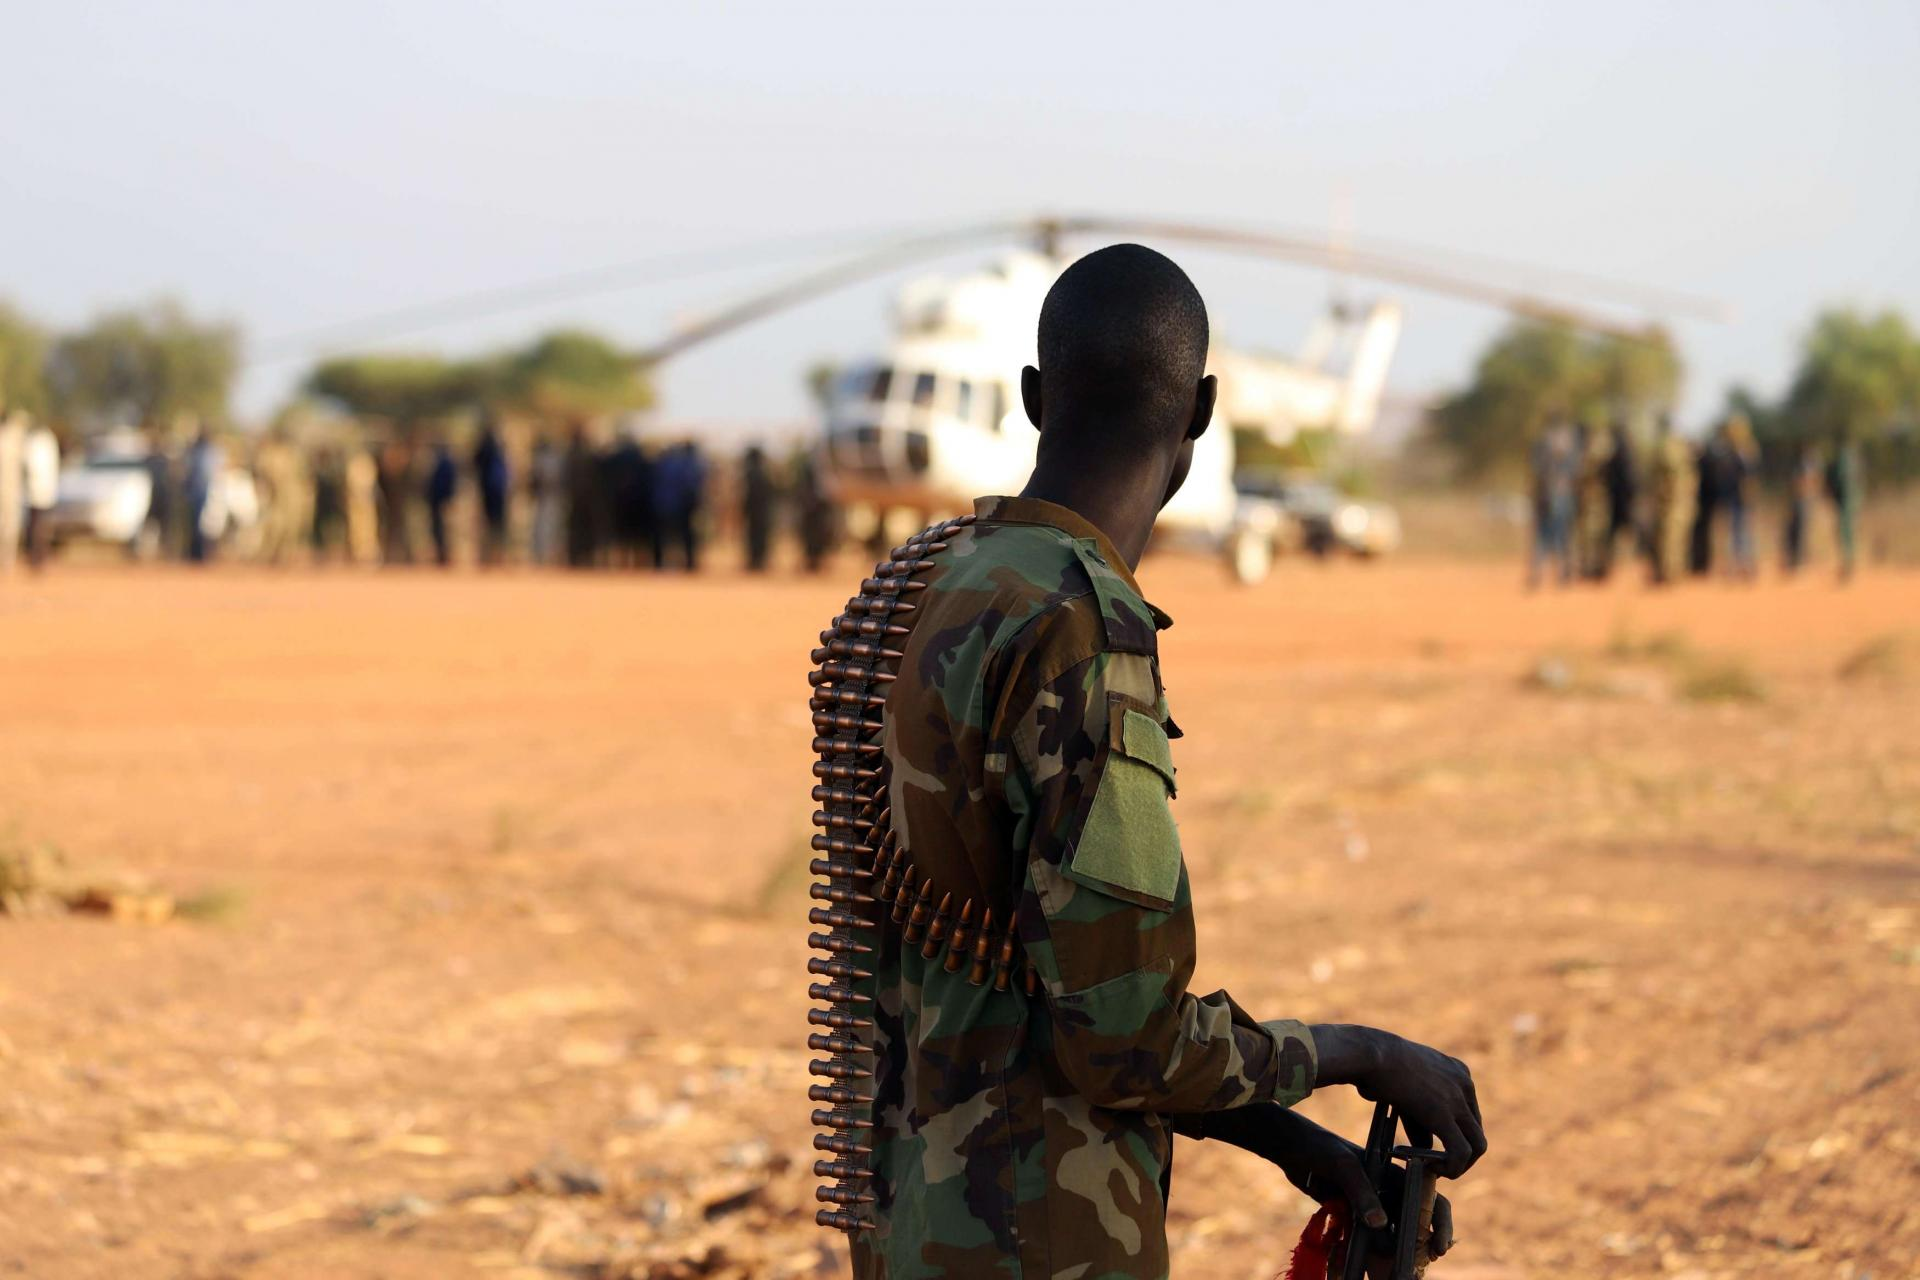 Mubarak was addressing the Sudanese Armed Forces (SAF) in Omdurman, the twin city of the capital Khartoum, both of which have been rocked by protests since December 19.